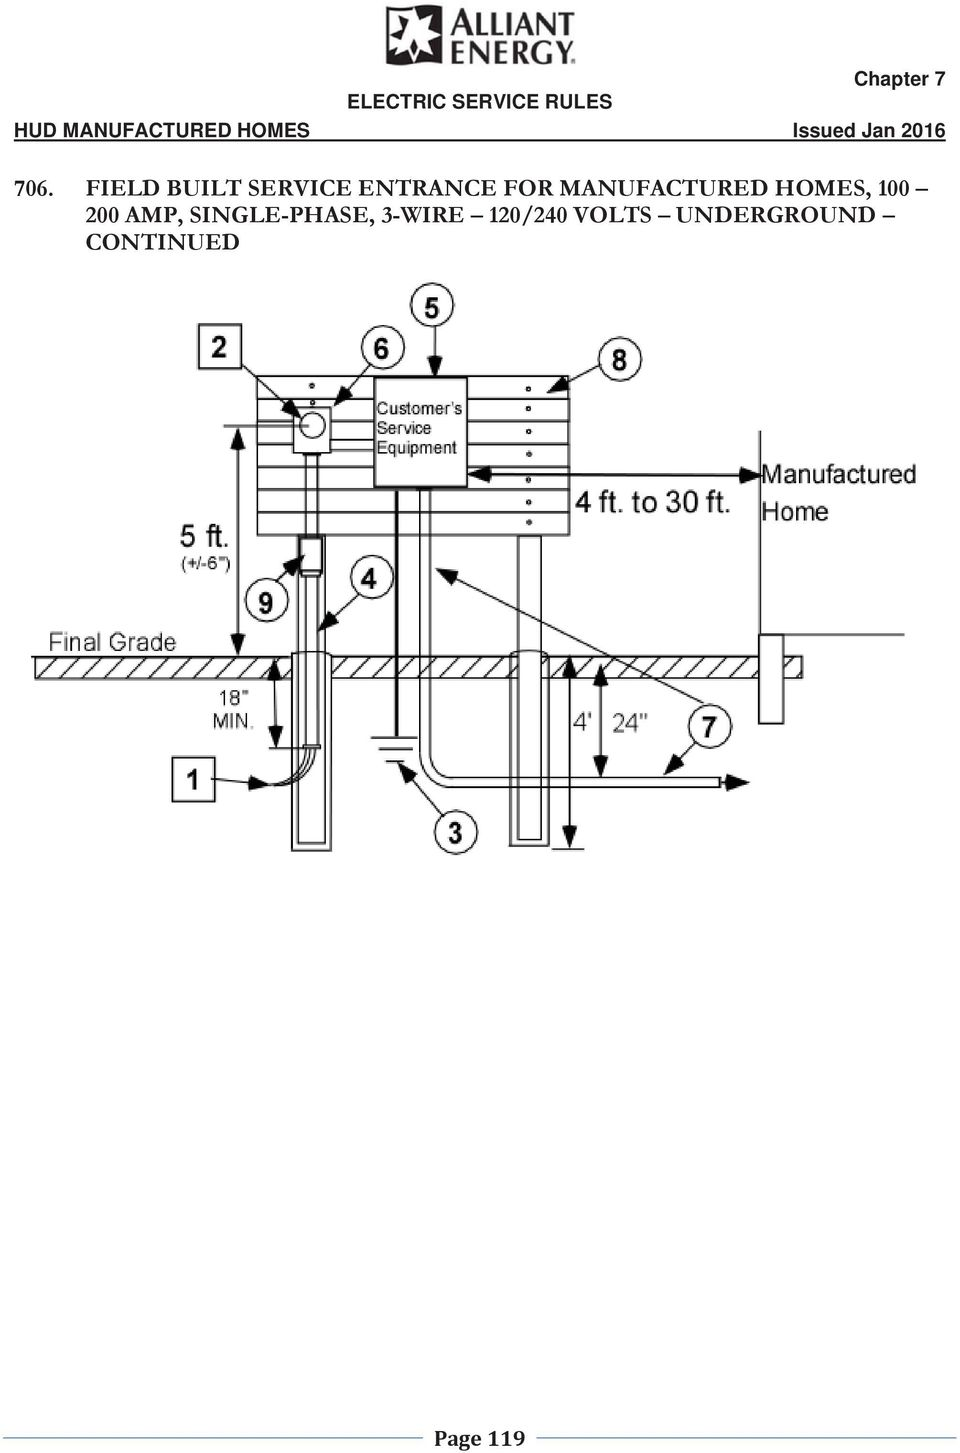 Electric Service Rules Hud Manufactured Homes Issued Jan 2016 Ory Circuit Diagram Continued Amp Single Phase 3 Wire 120 240